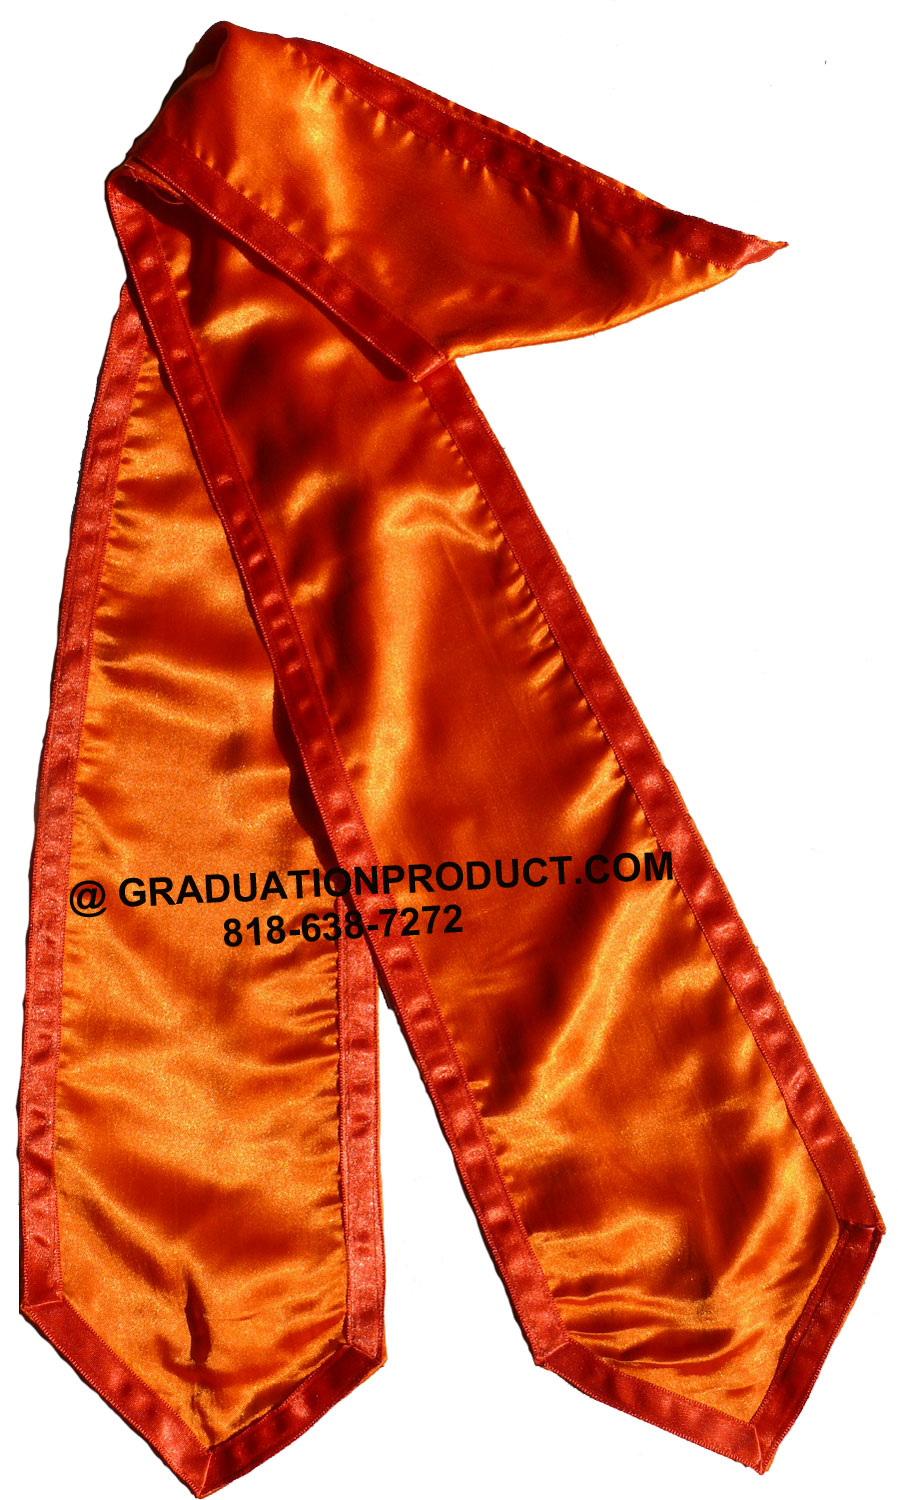 Orange Graduation Stole With Red Trim